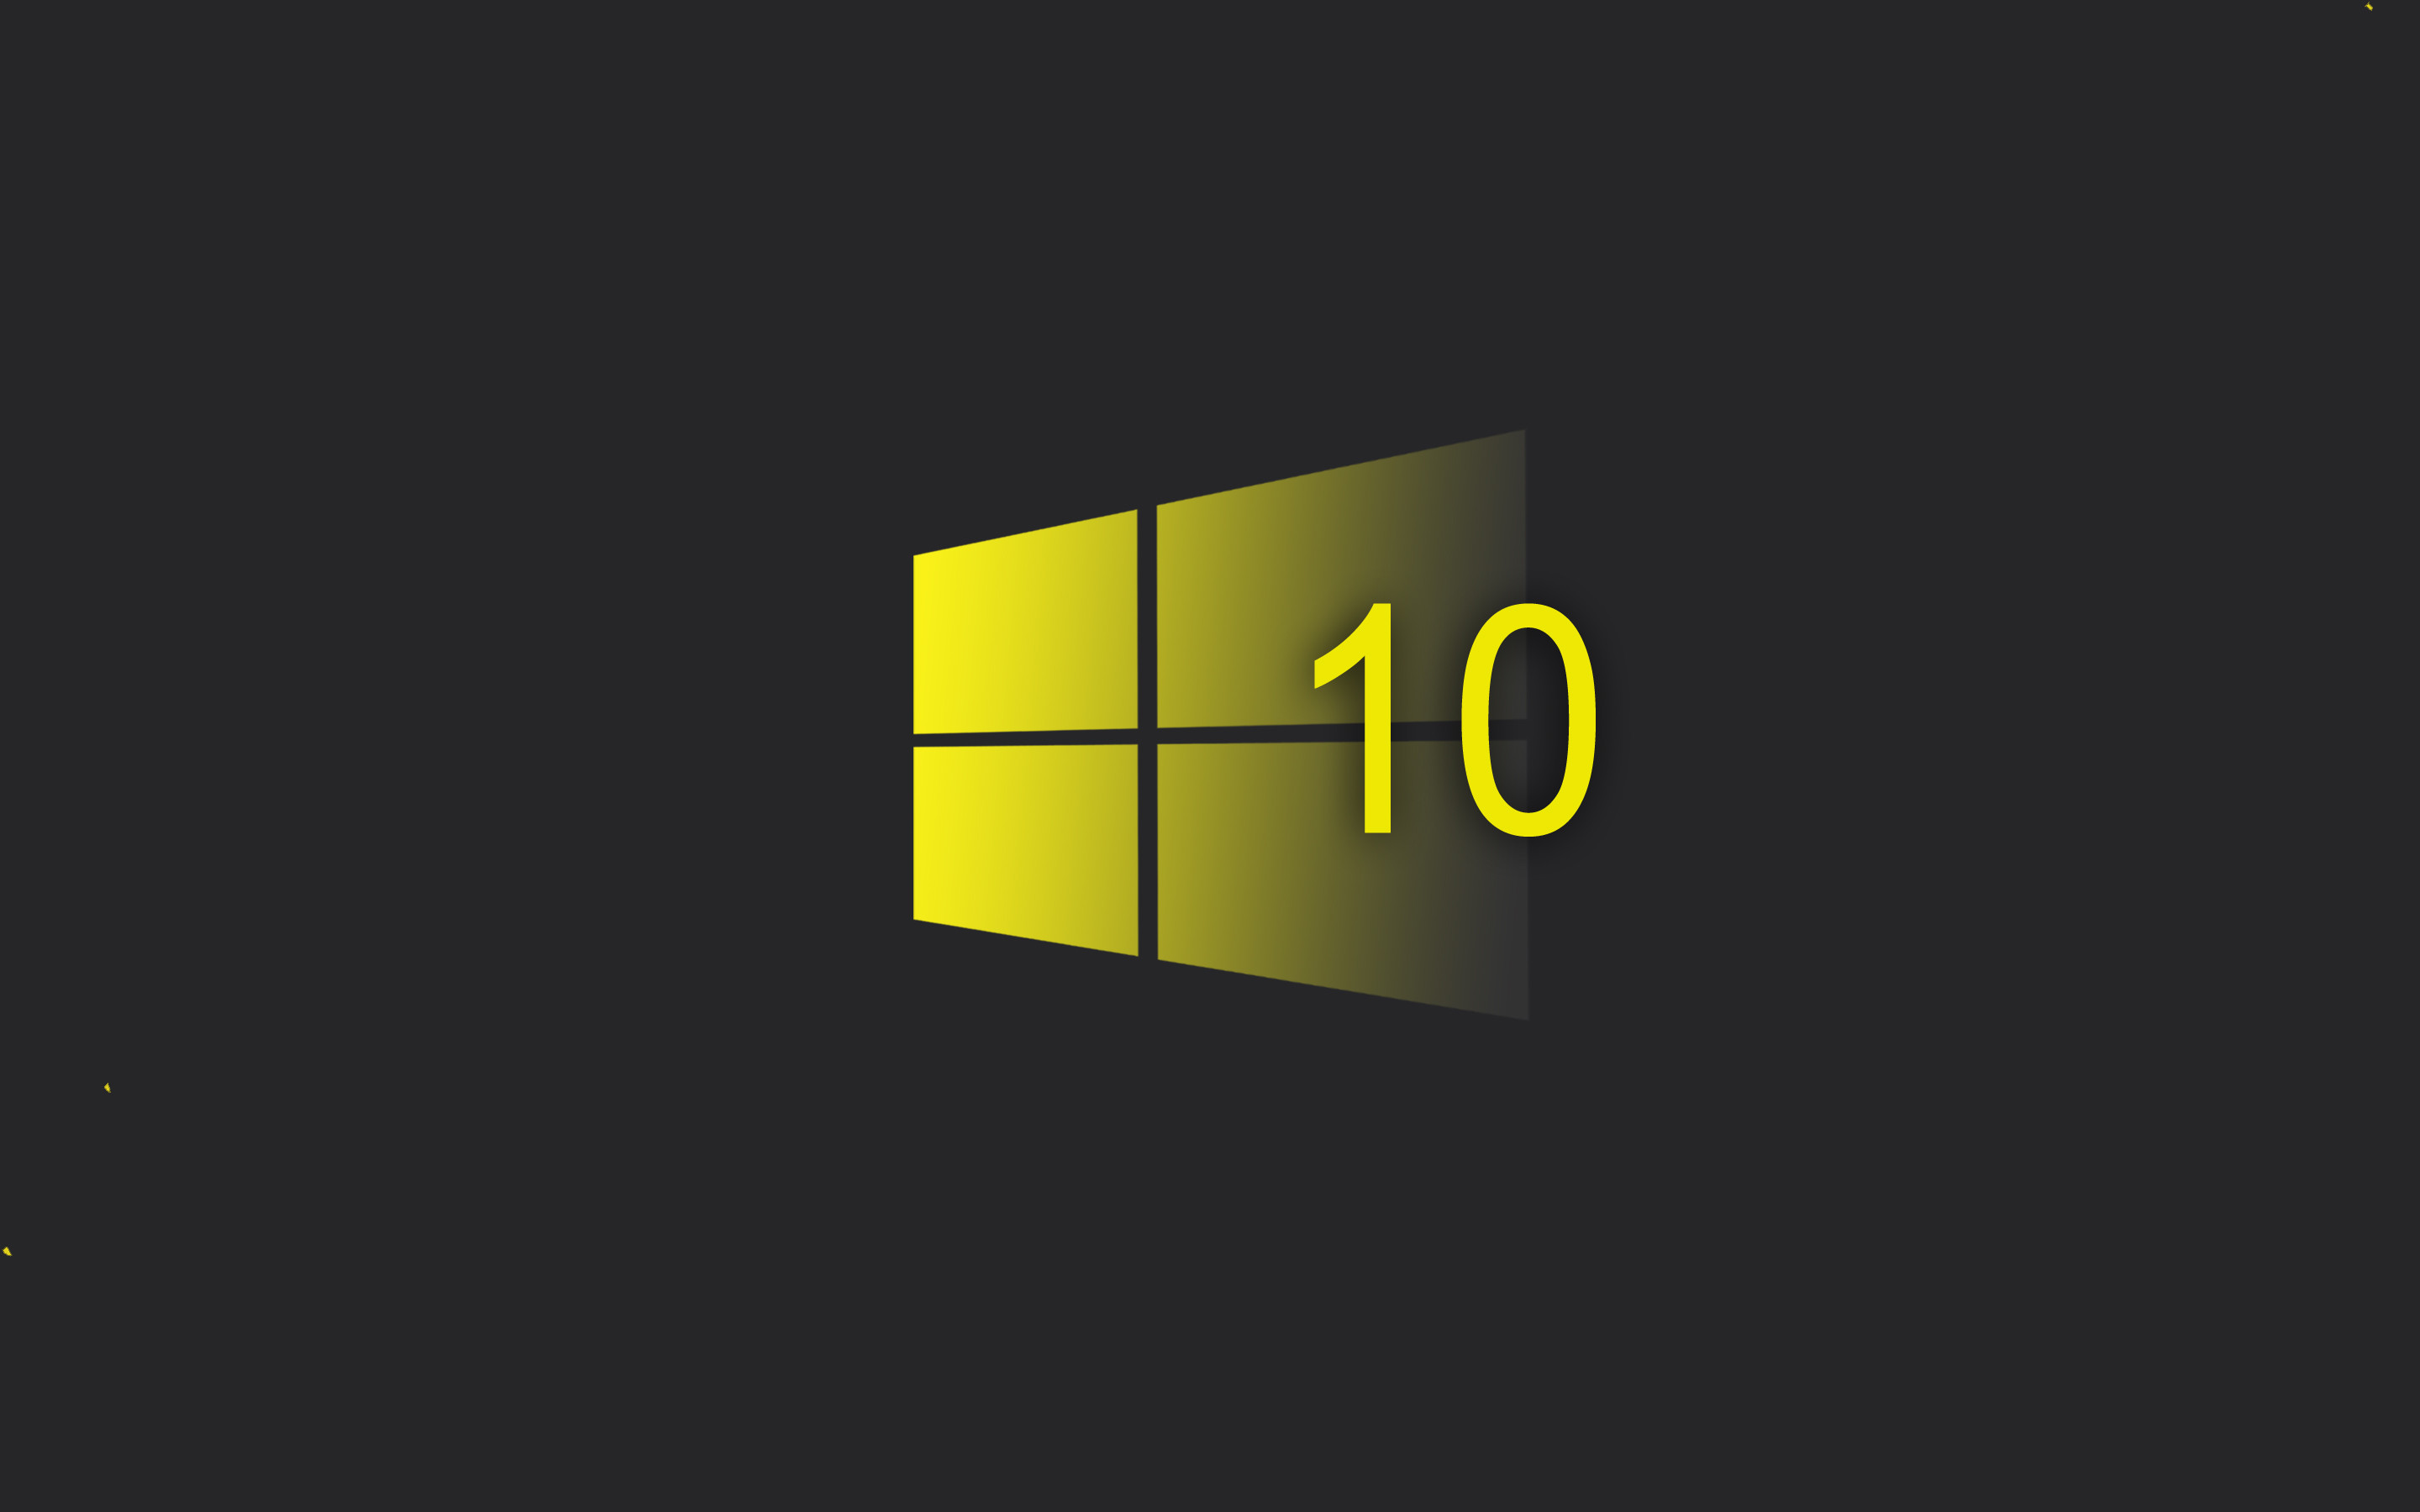 Microsoft Windows Android HD Wallpapers Amazing Wallpaperz